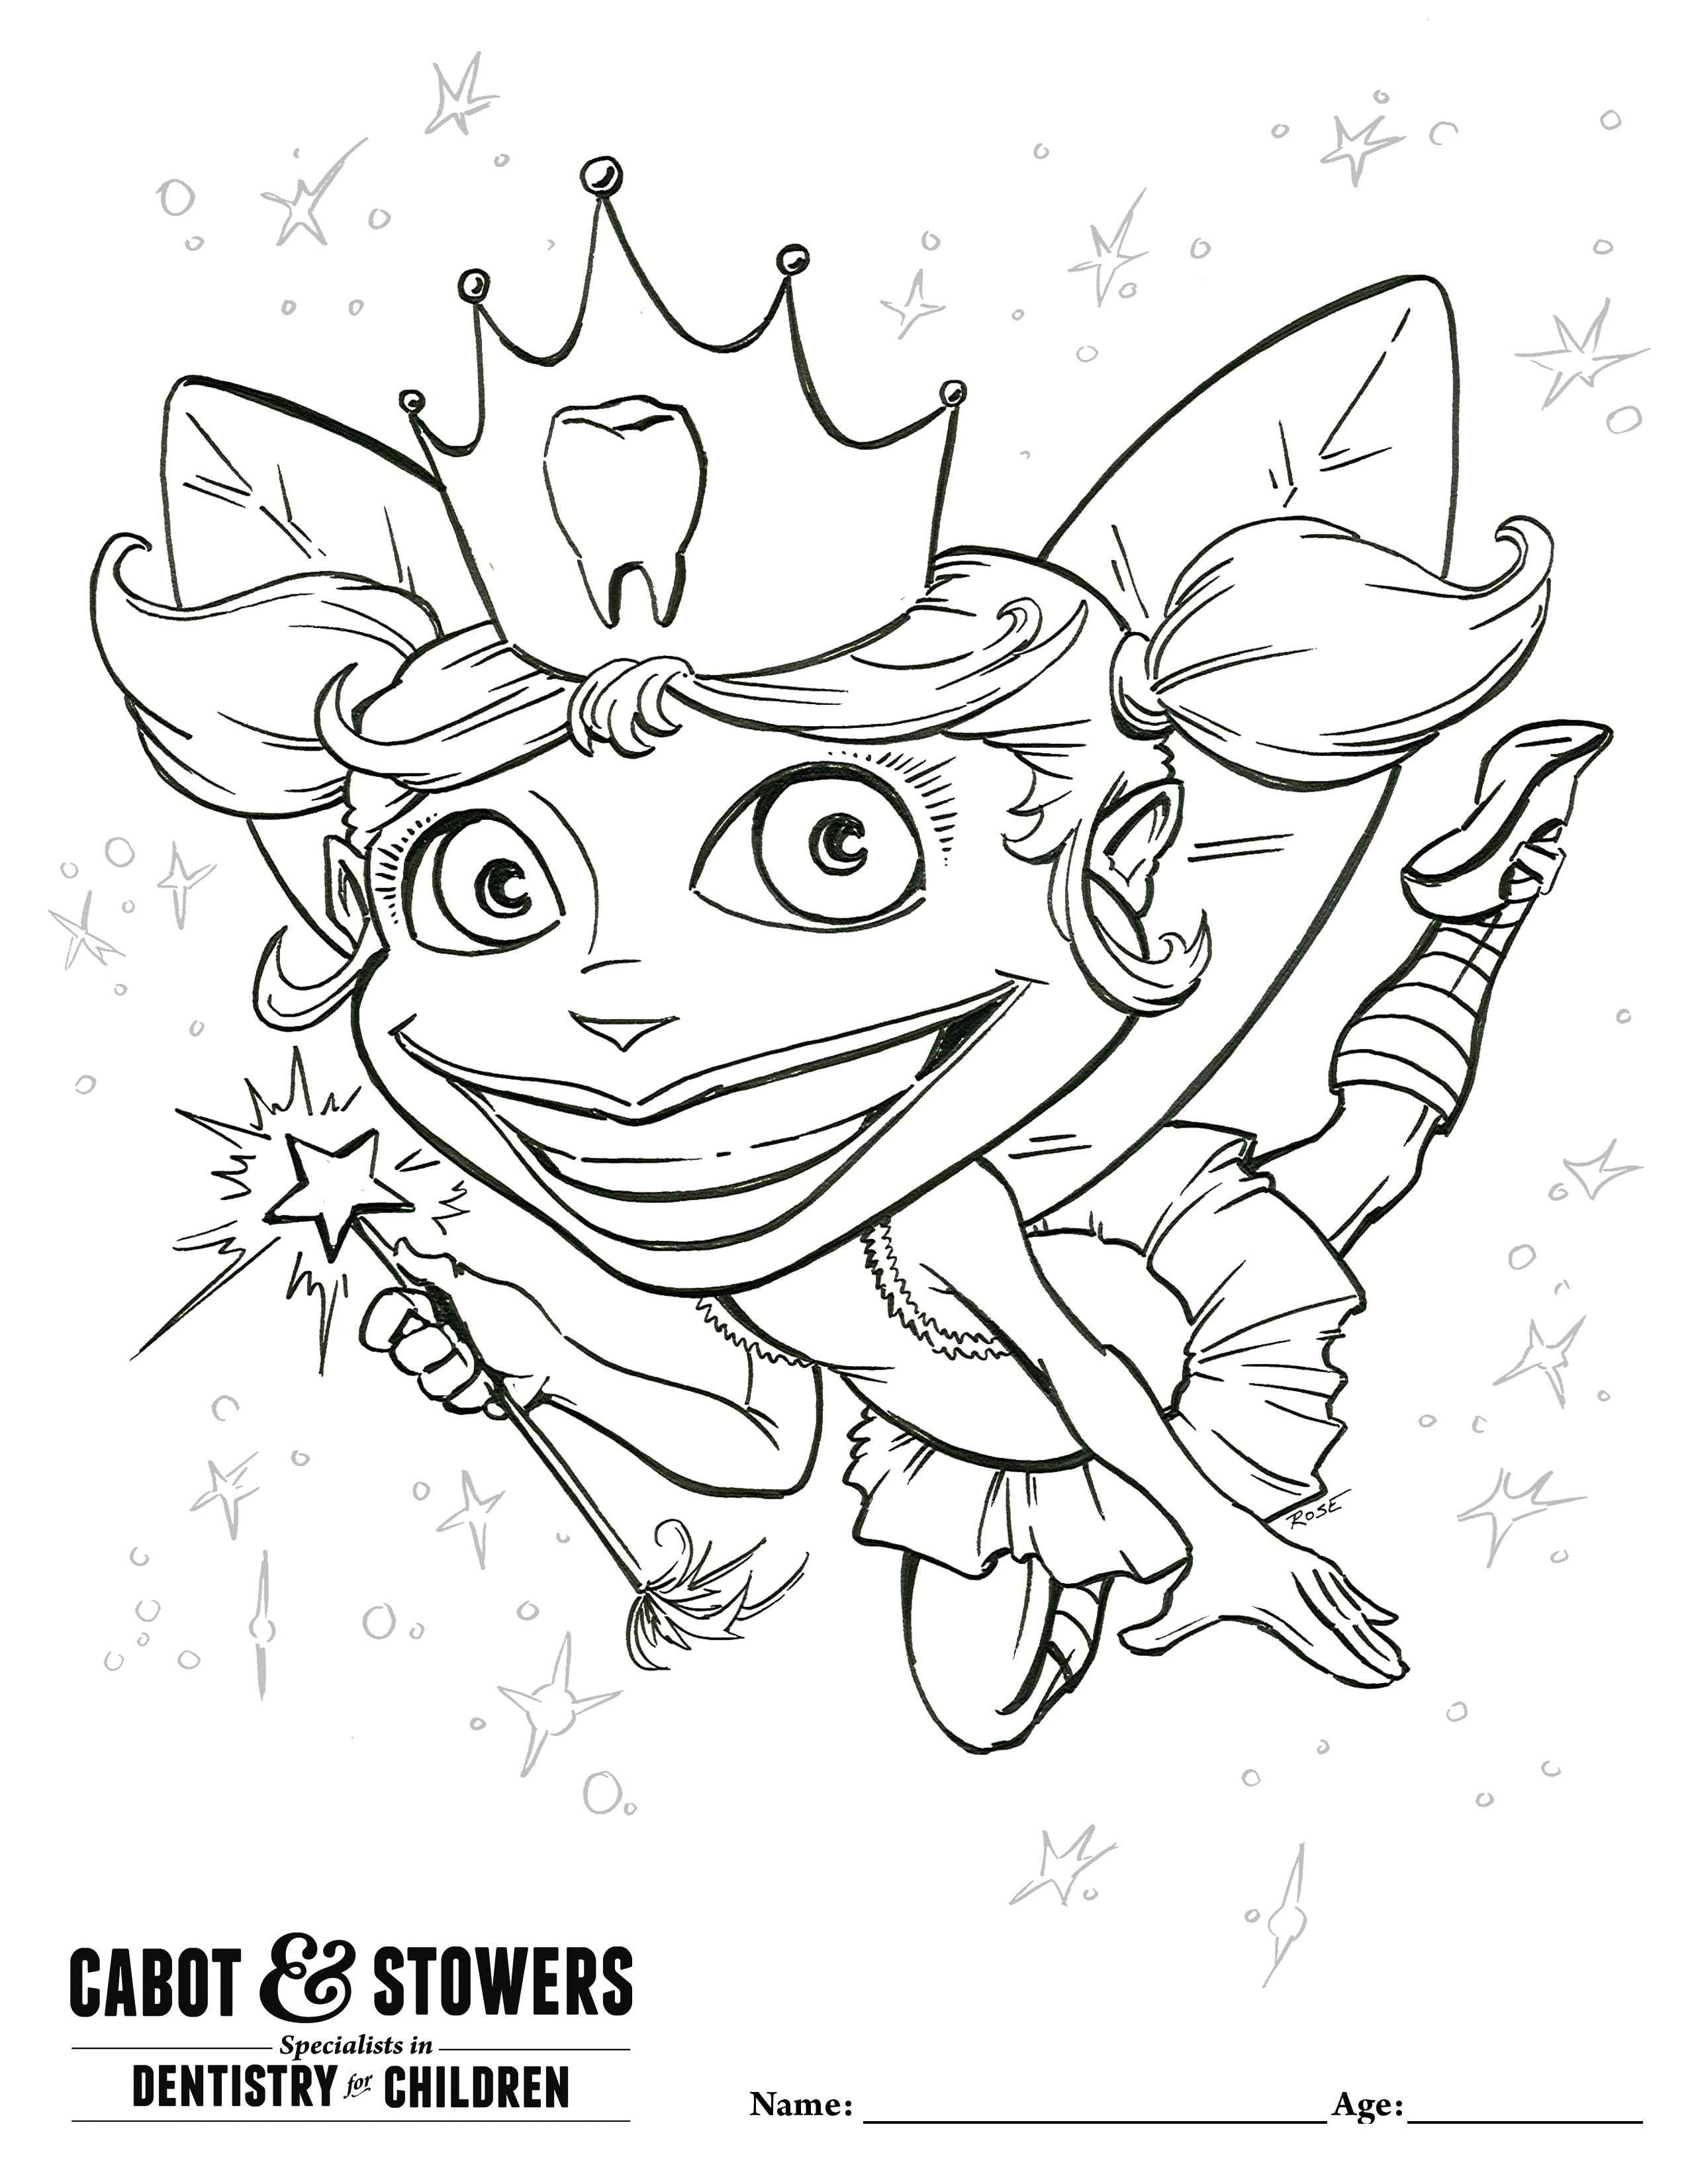 Tooth fairy drawing at getdrawings free for personal use tooth 2550x3300 national tooth fairy day spiritdancerdesigns Images